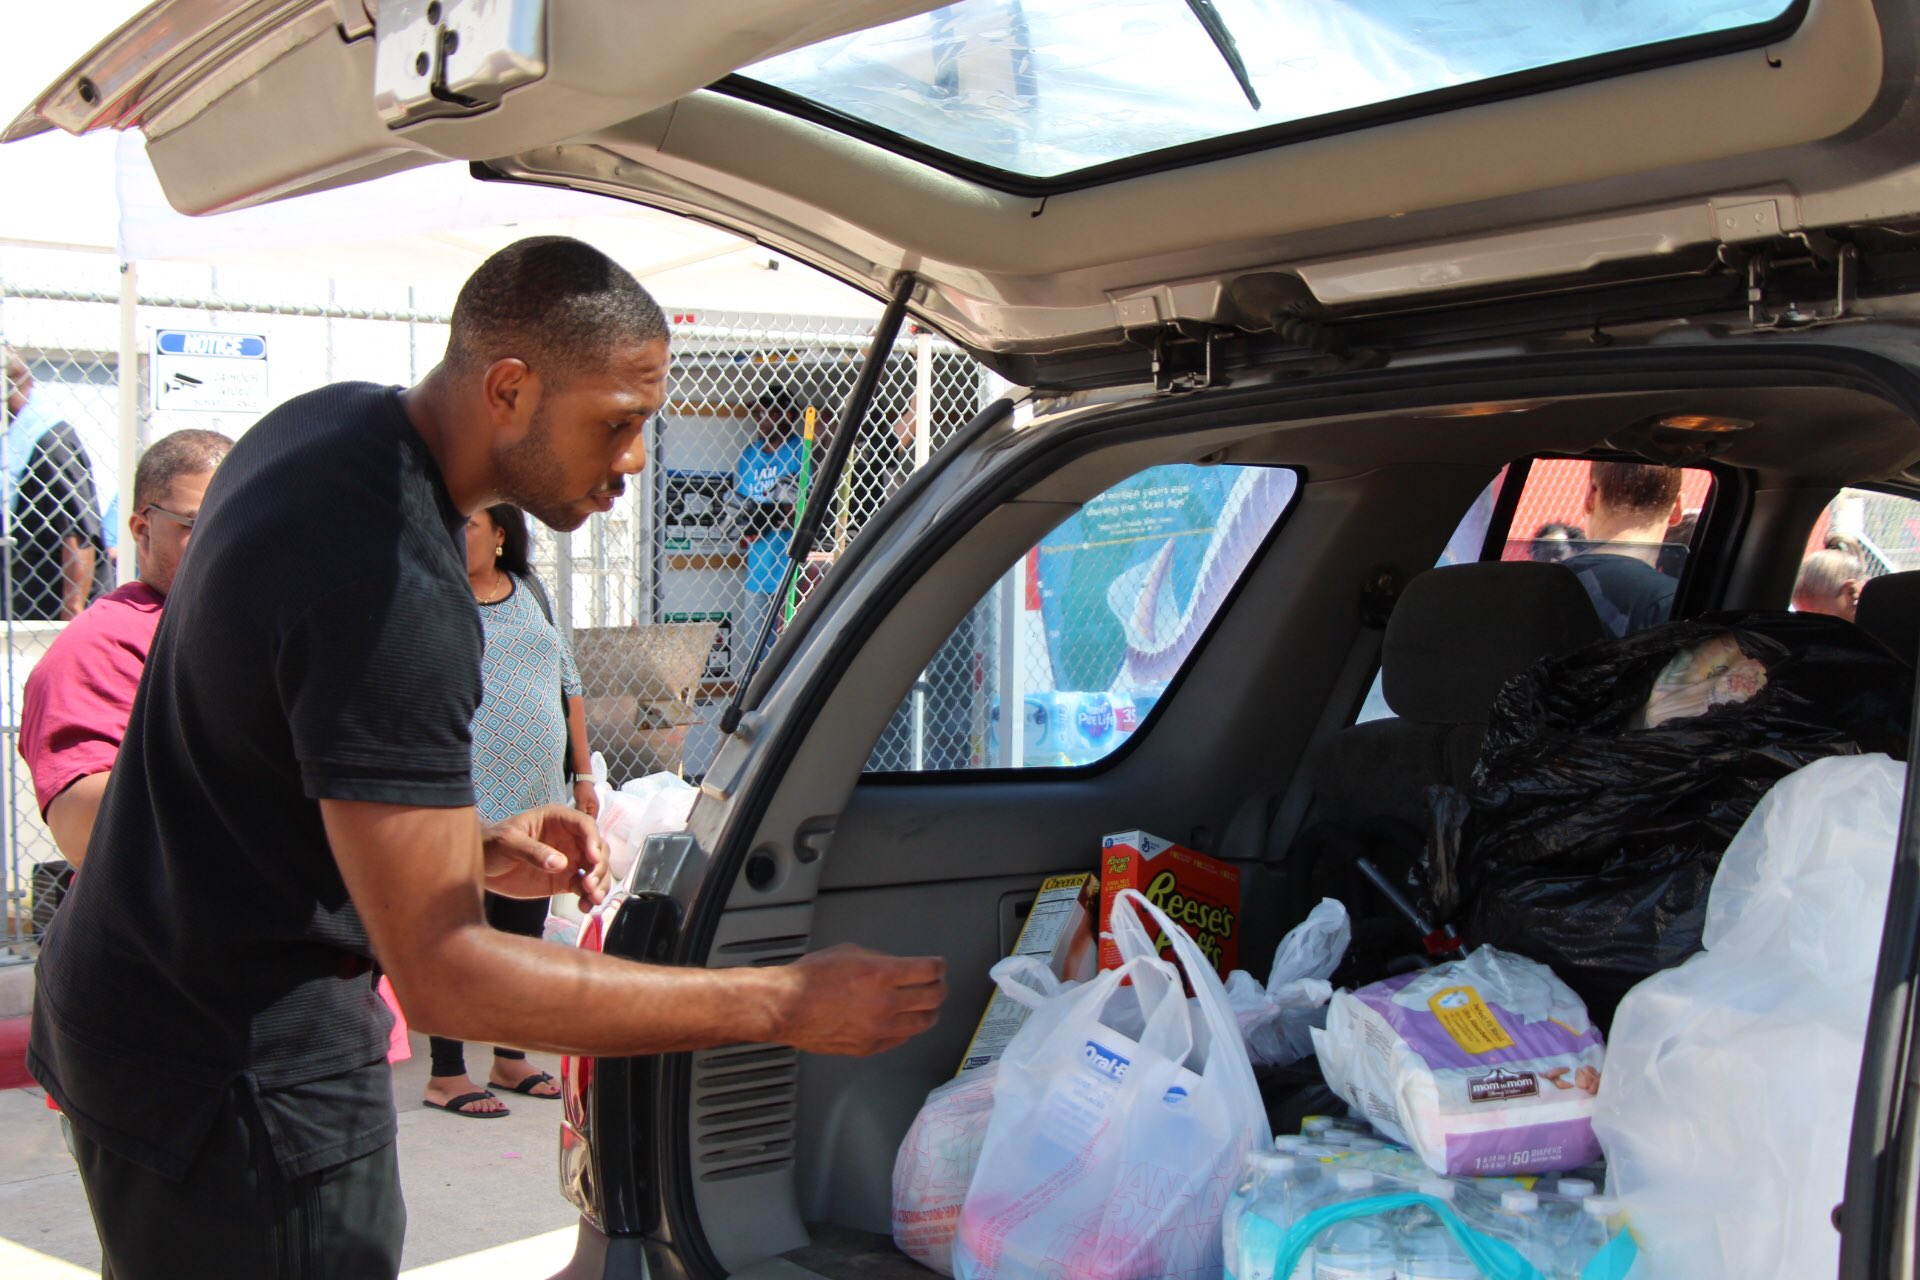 .@TheofficialEG10 continuing his efforts at the next stop by donating essentials for #HurricaneHarvey Relief. https://t.co/KYhDFULAO7